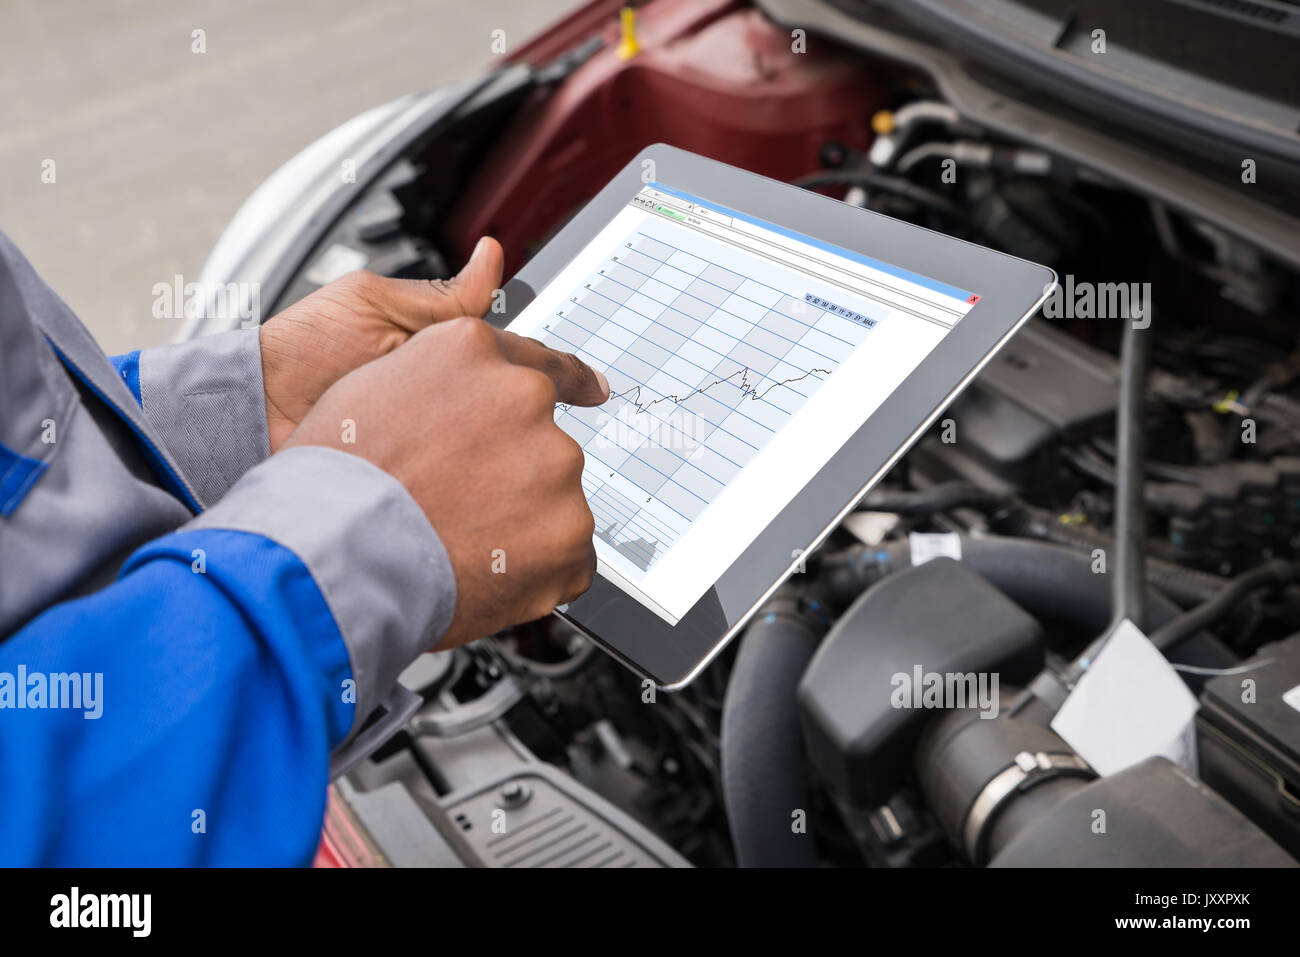 Car Engine Diagram Stockfotos & Car Engine Diagram Bilder - Alamy